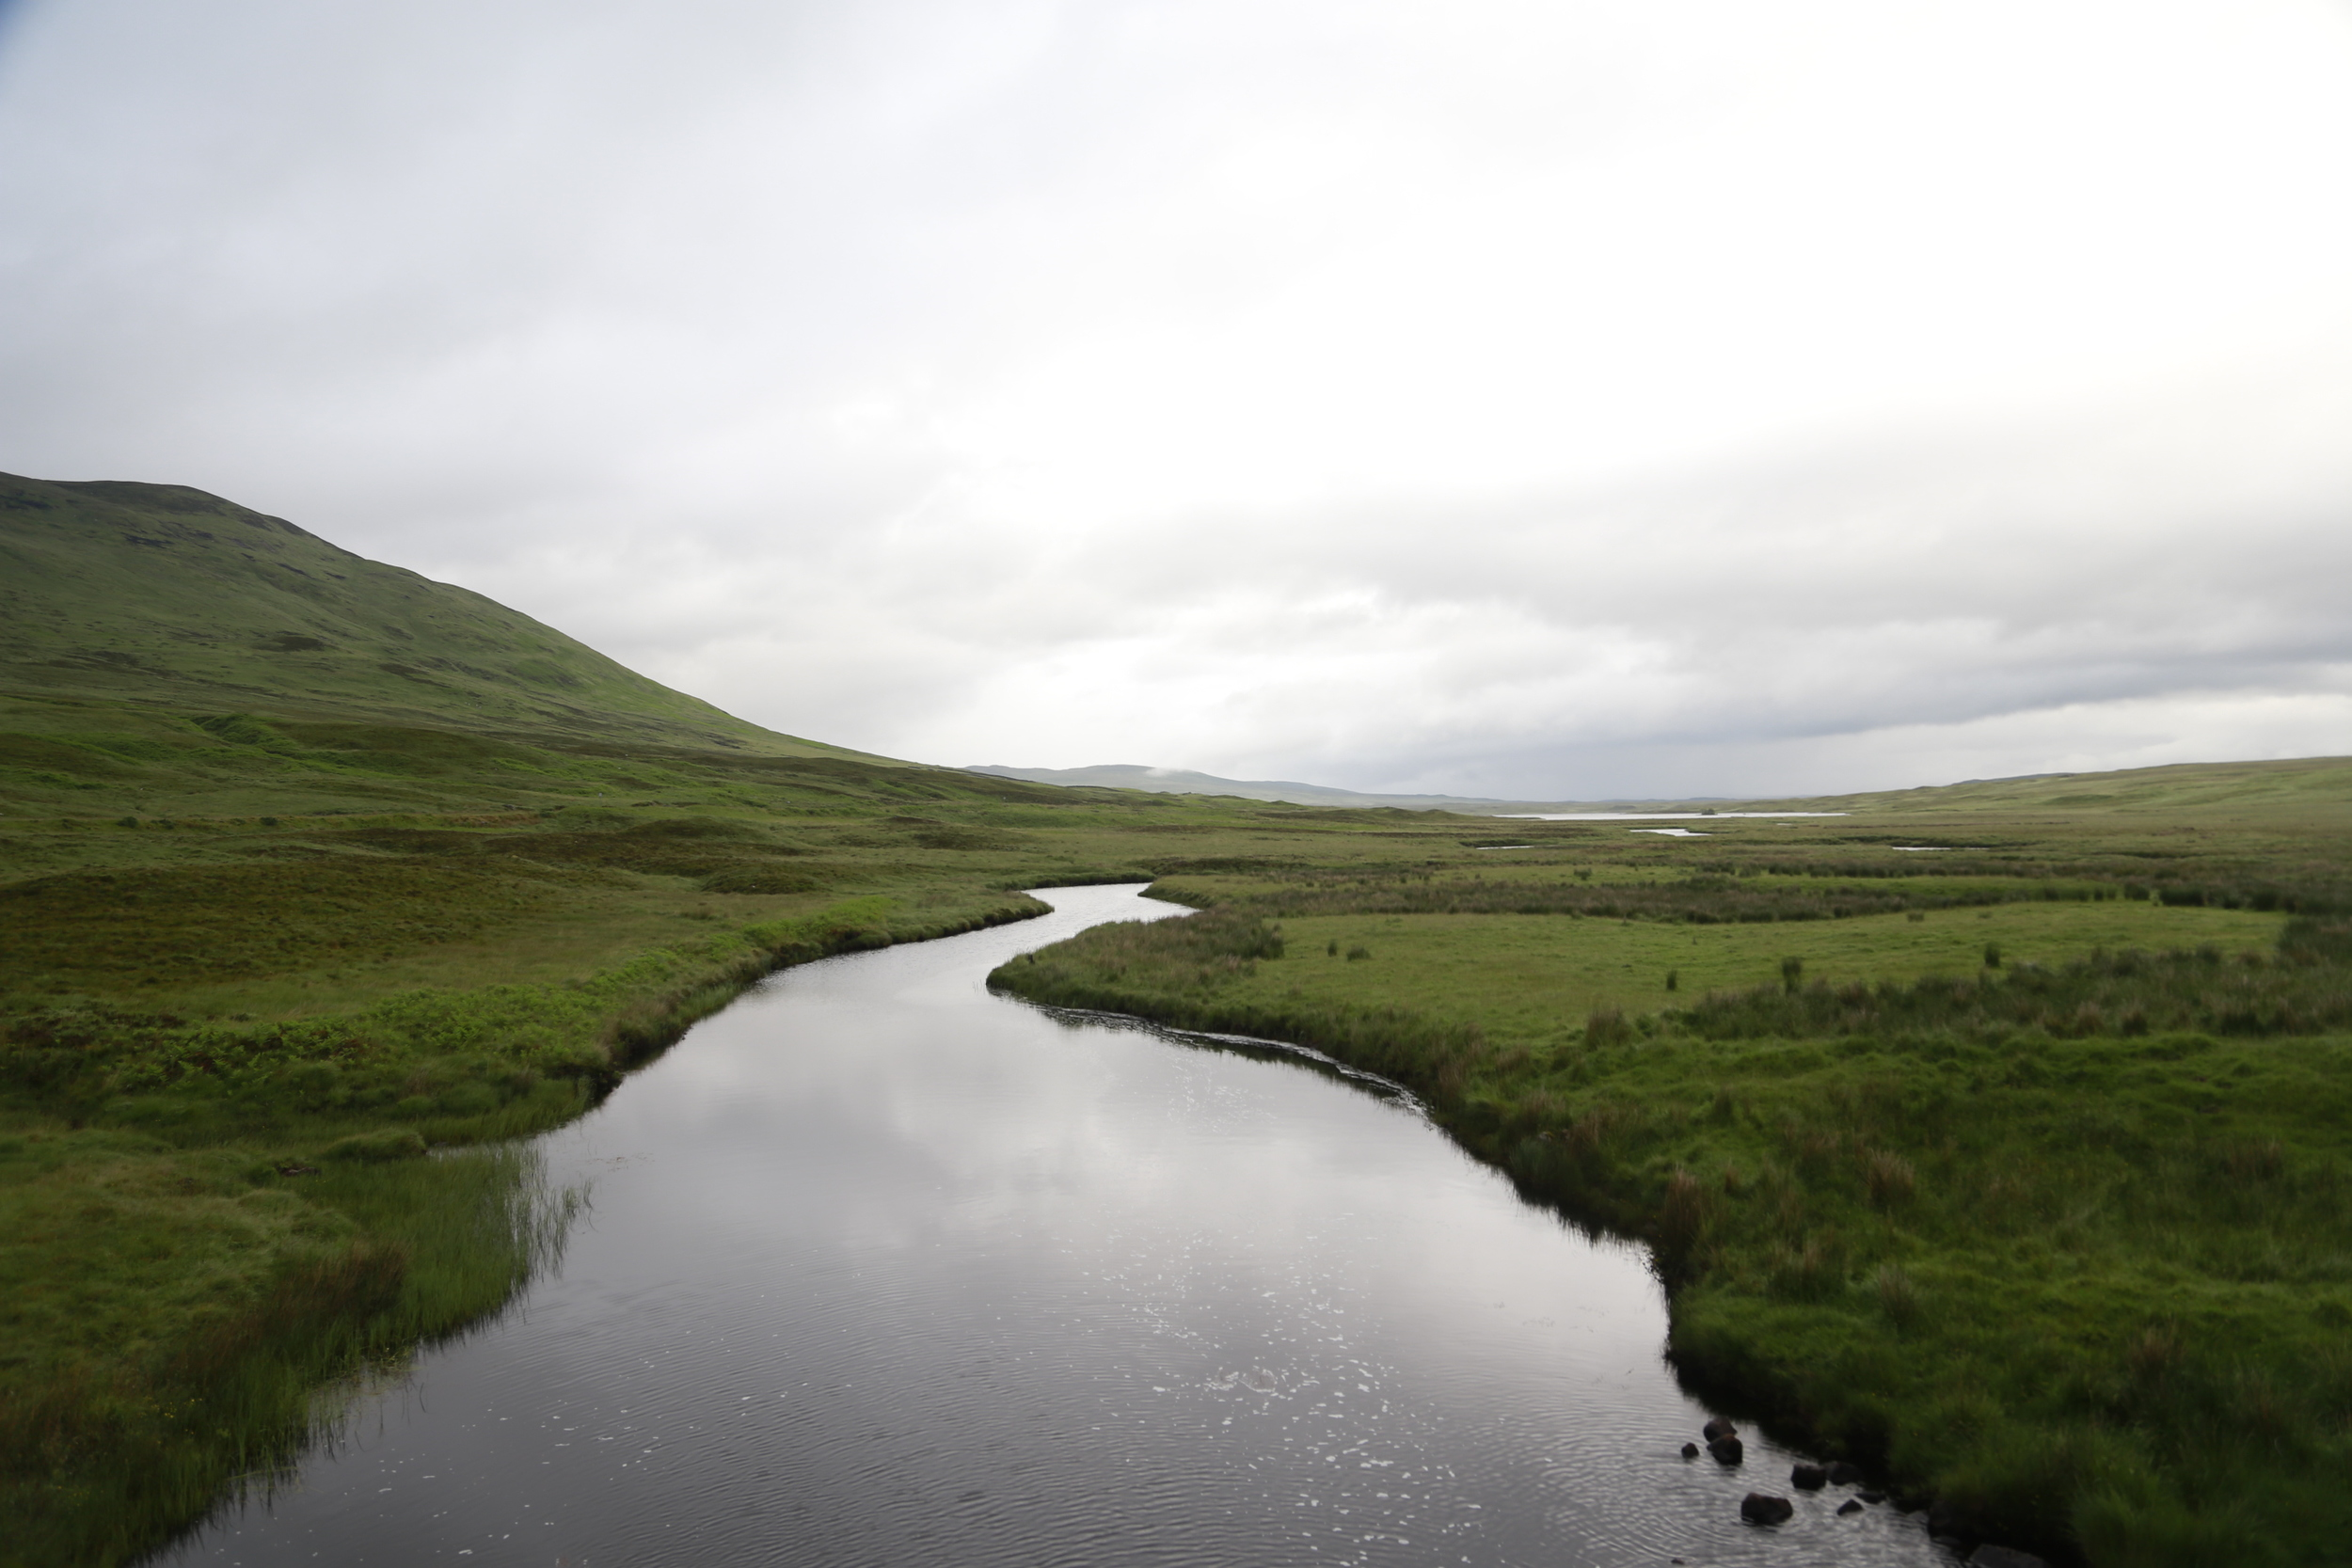 river, scenery, highlands, scotland, photography, landscape, canon, 6d